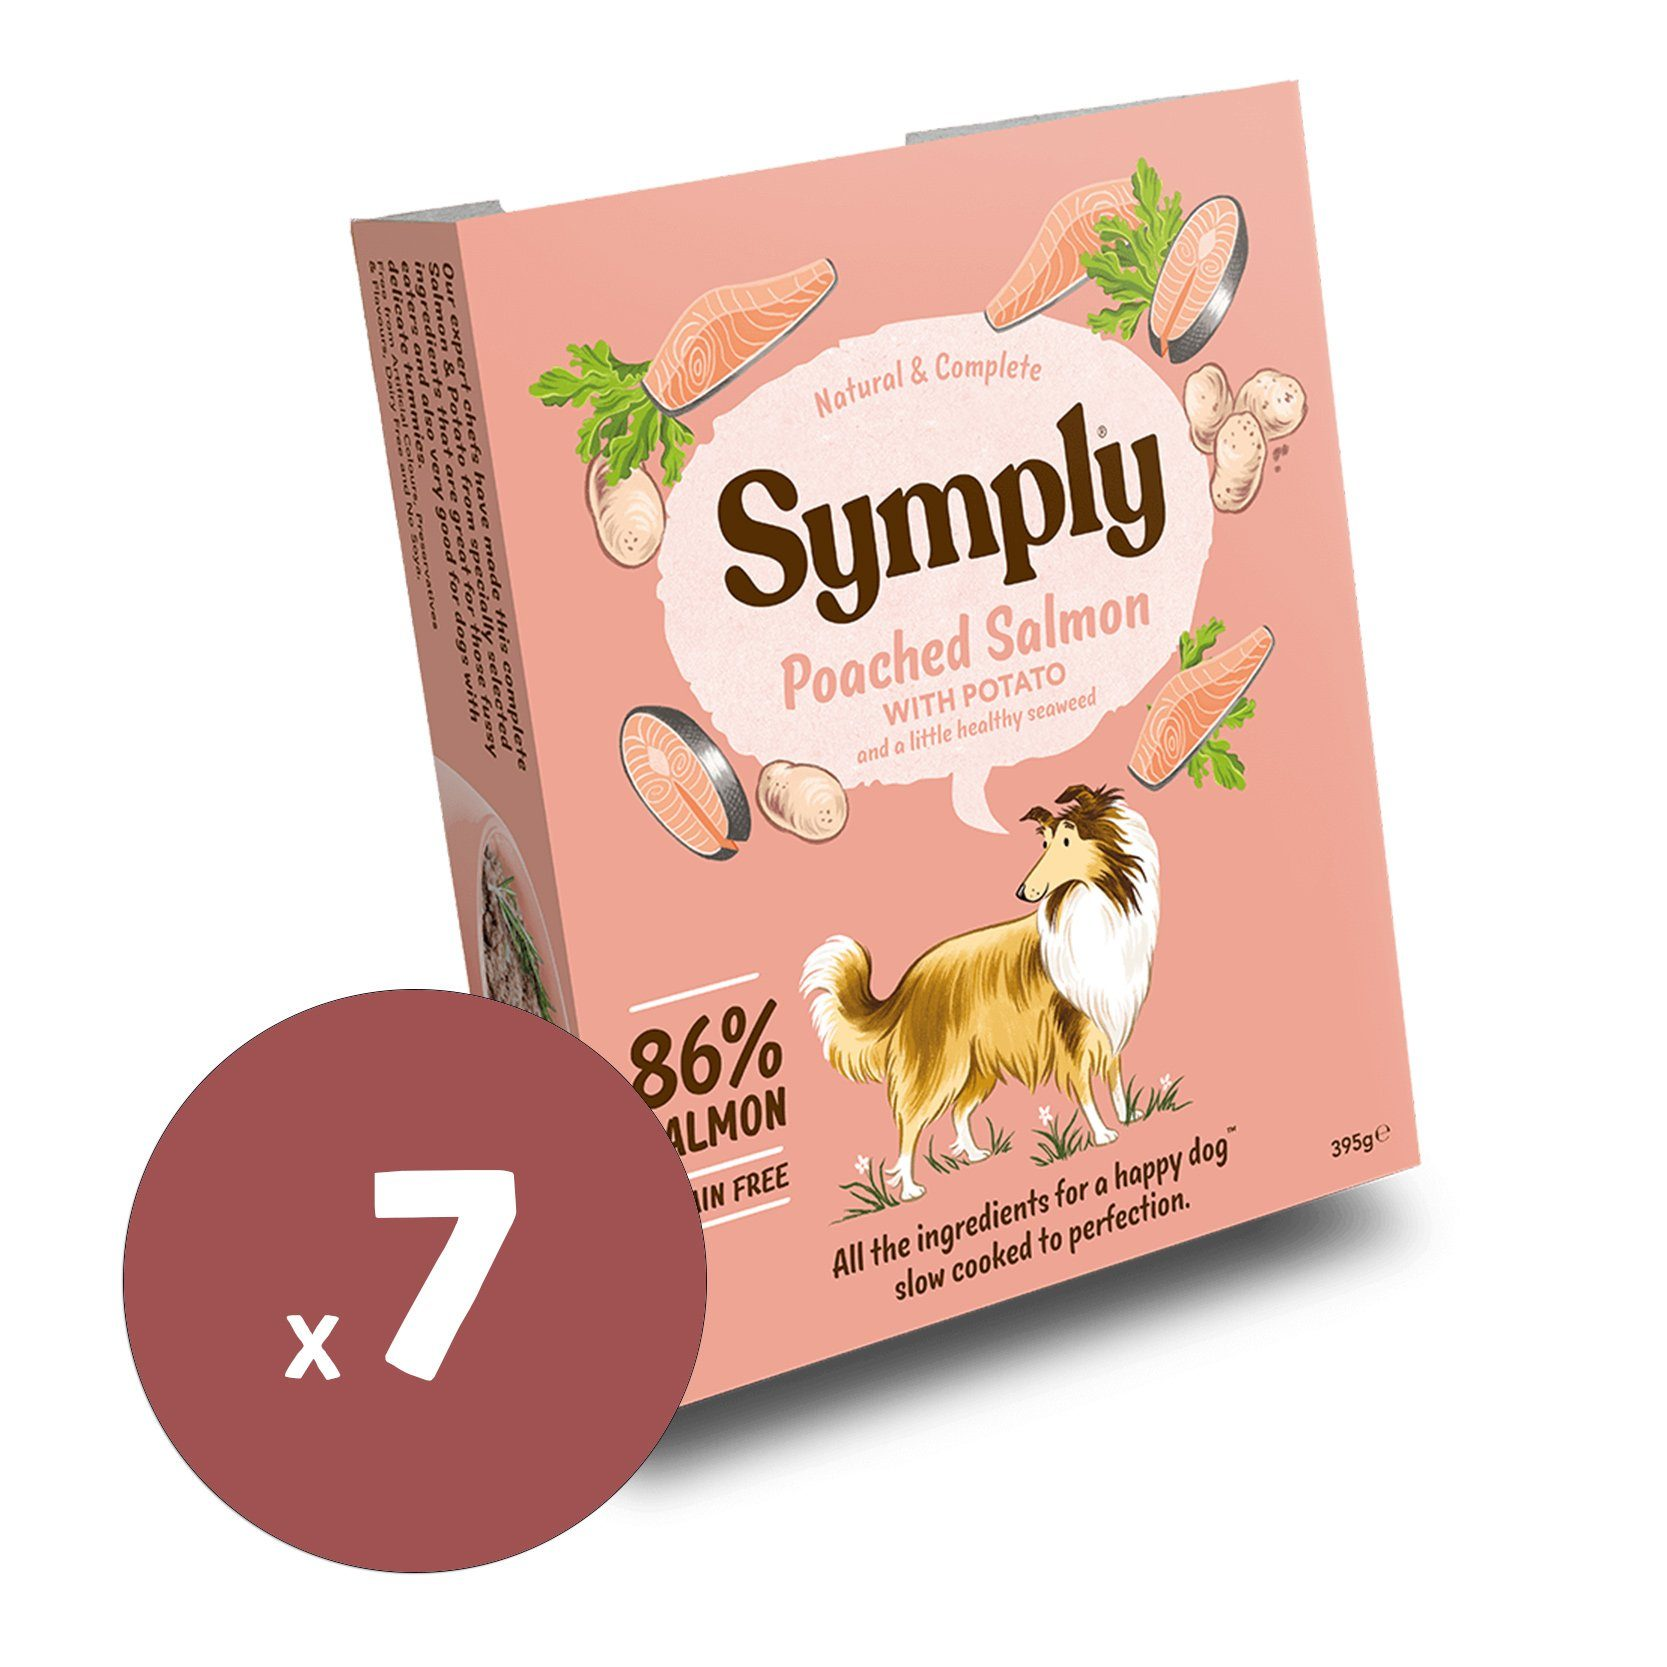 Symply Wet Food Poached Salmon 395gx7 Dog Food - Wet Symply